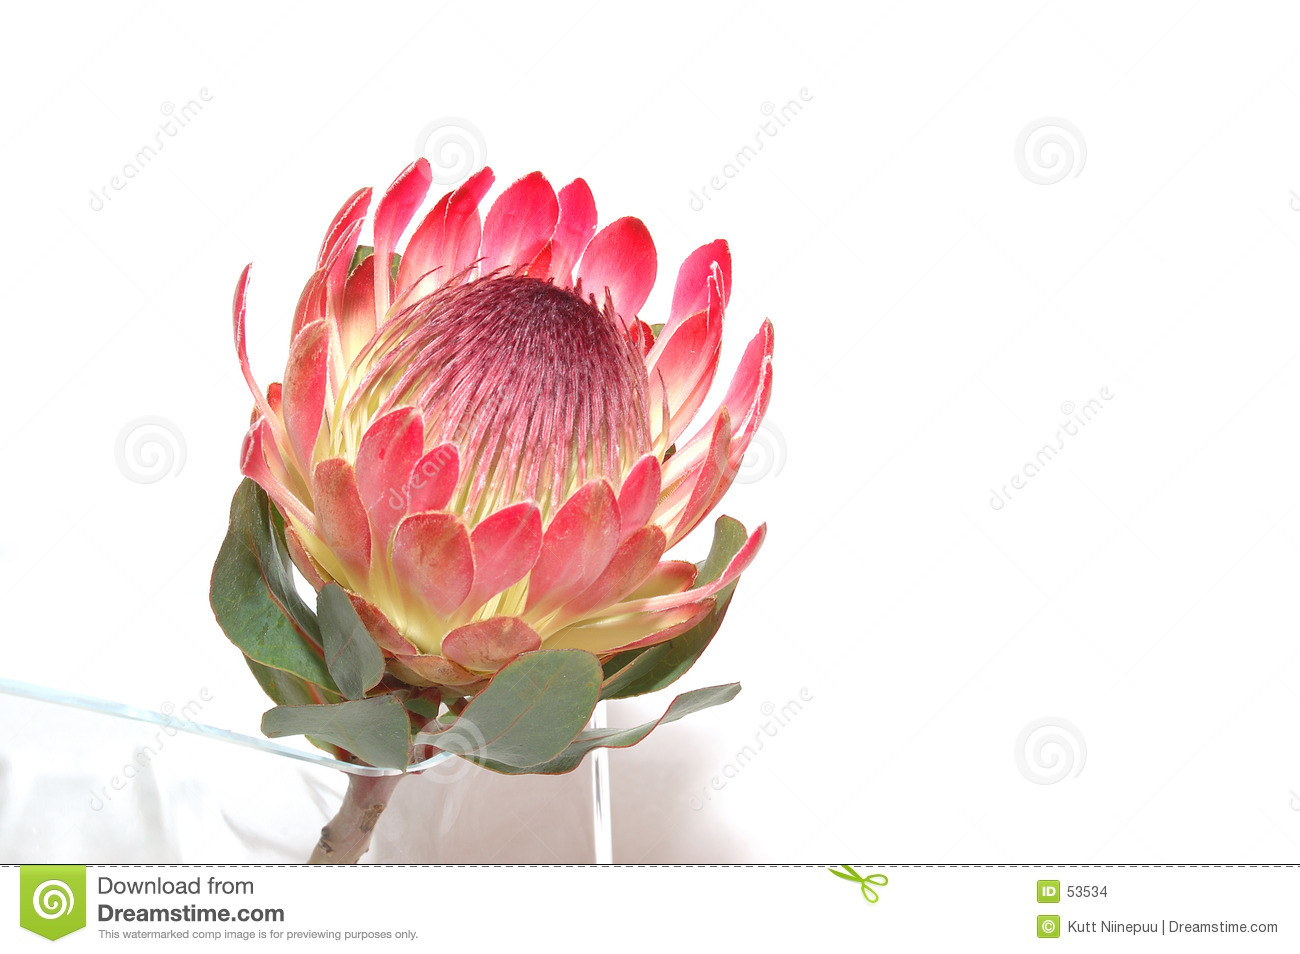 Closeup of a rare flower - Protea.Read more about it here.